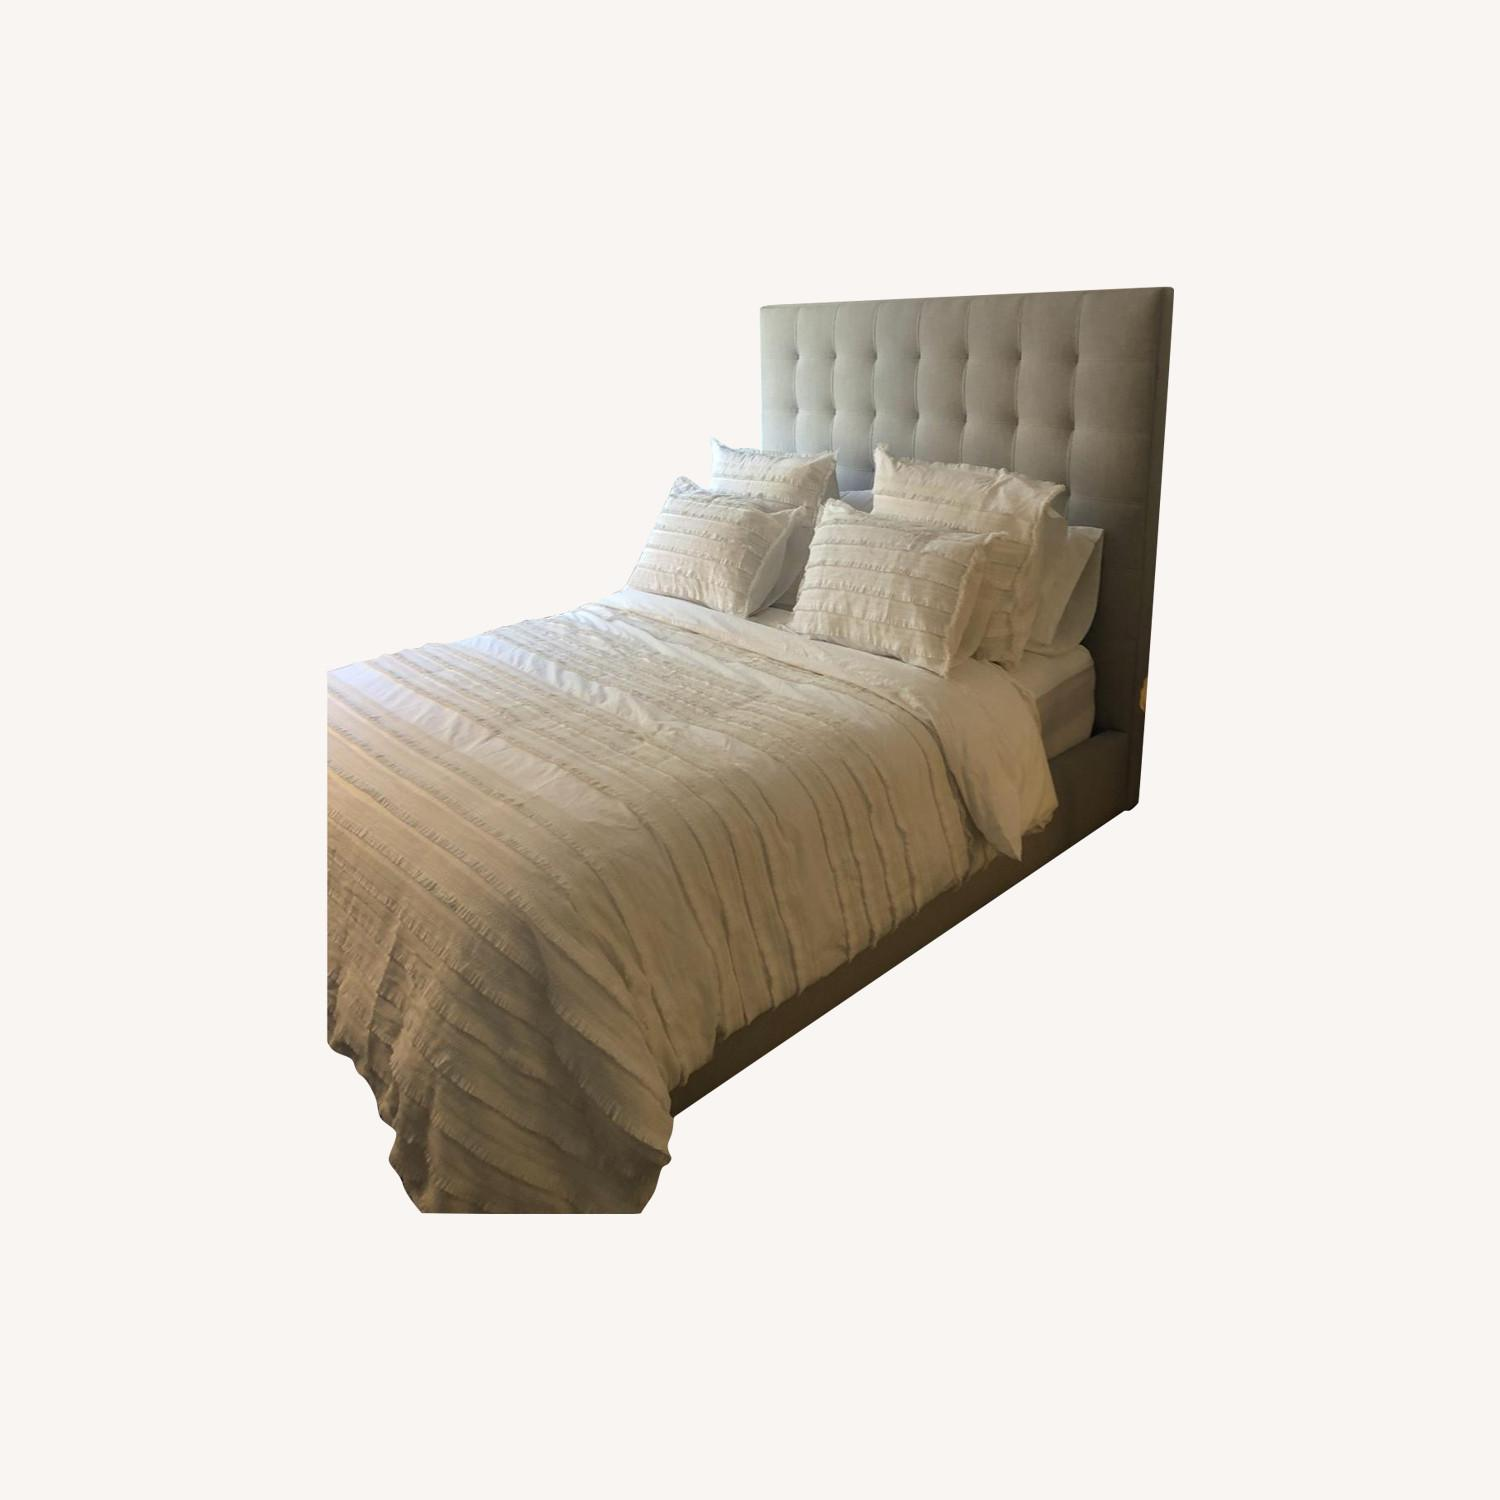 Room & Board Queen Size Light Grey Avery Bed - image-4